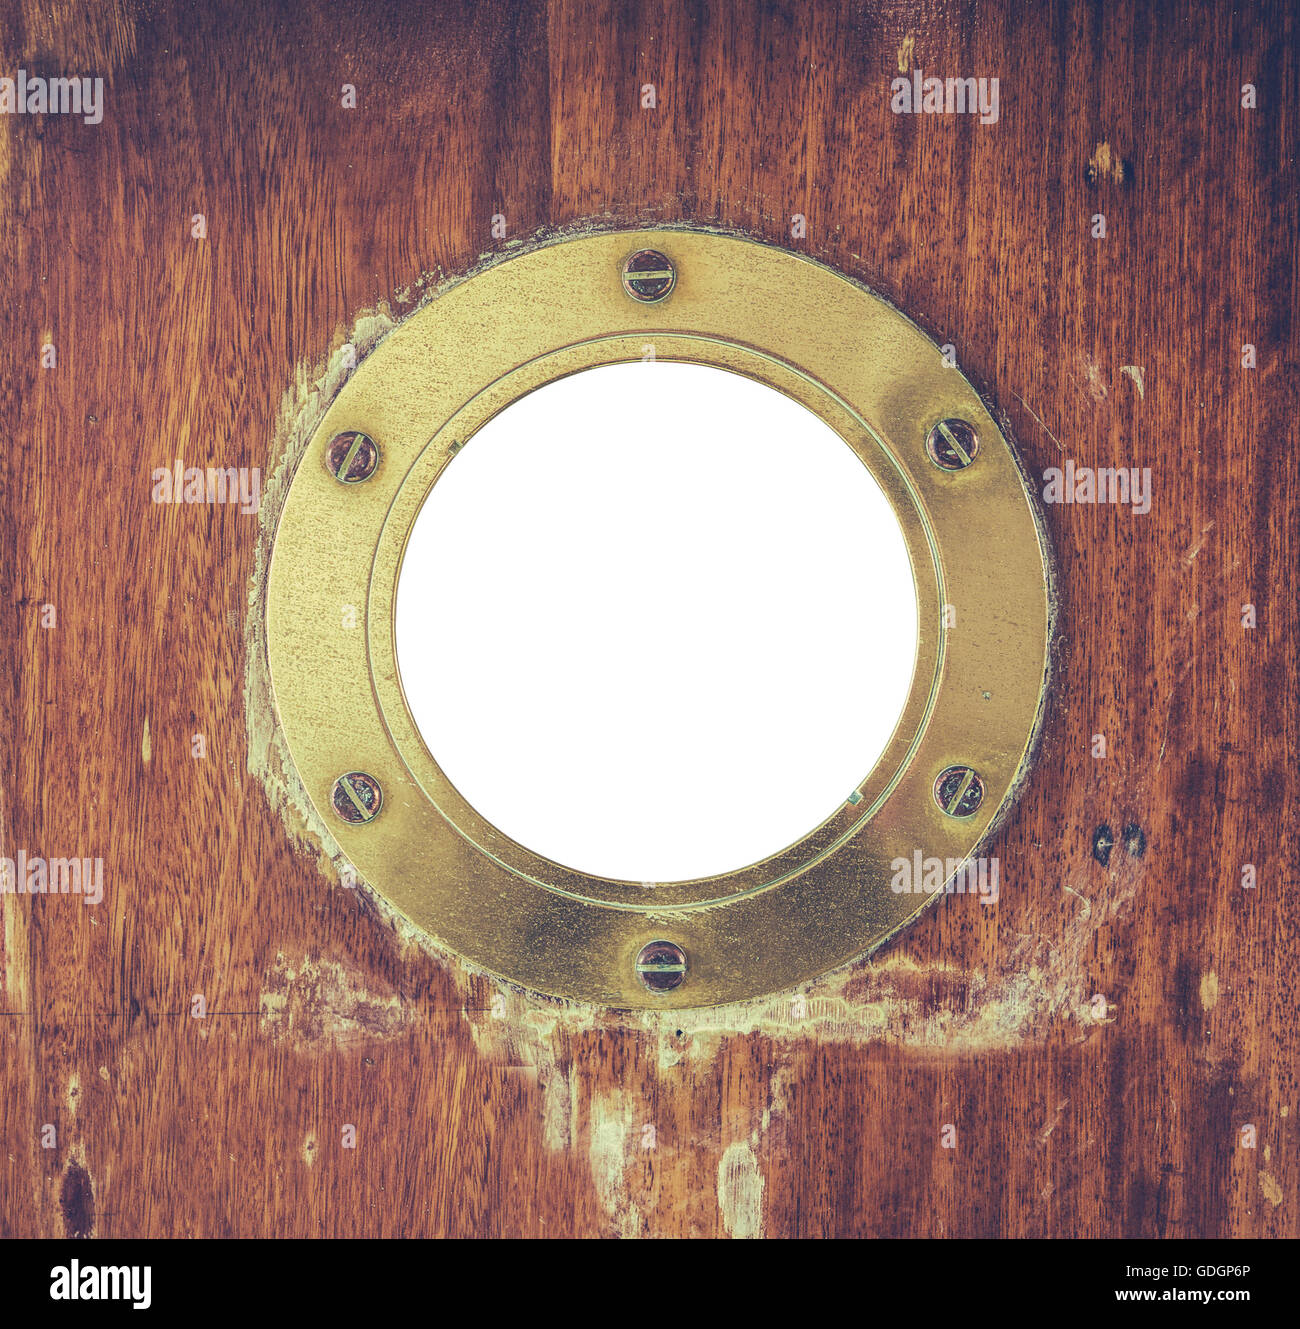 Vintage Brass Porthole In A Shipu0027s Door & Vintage Brass Porthole In A Shipu0027s Door Stock Photo: 111621406 - Alamy